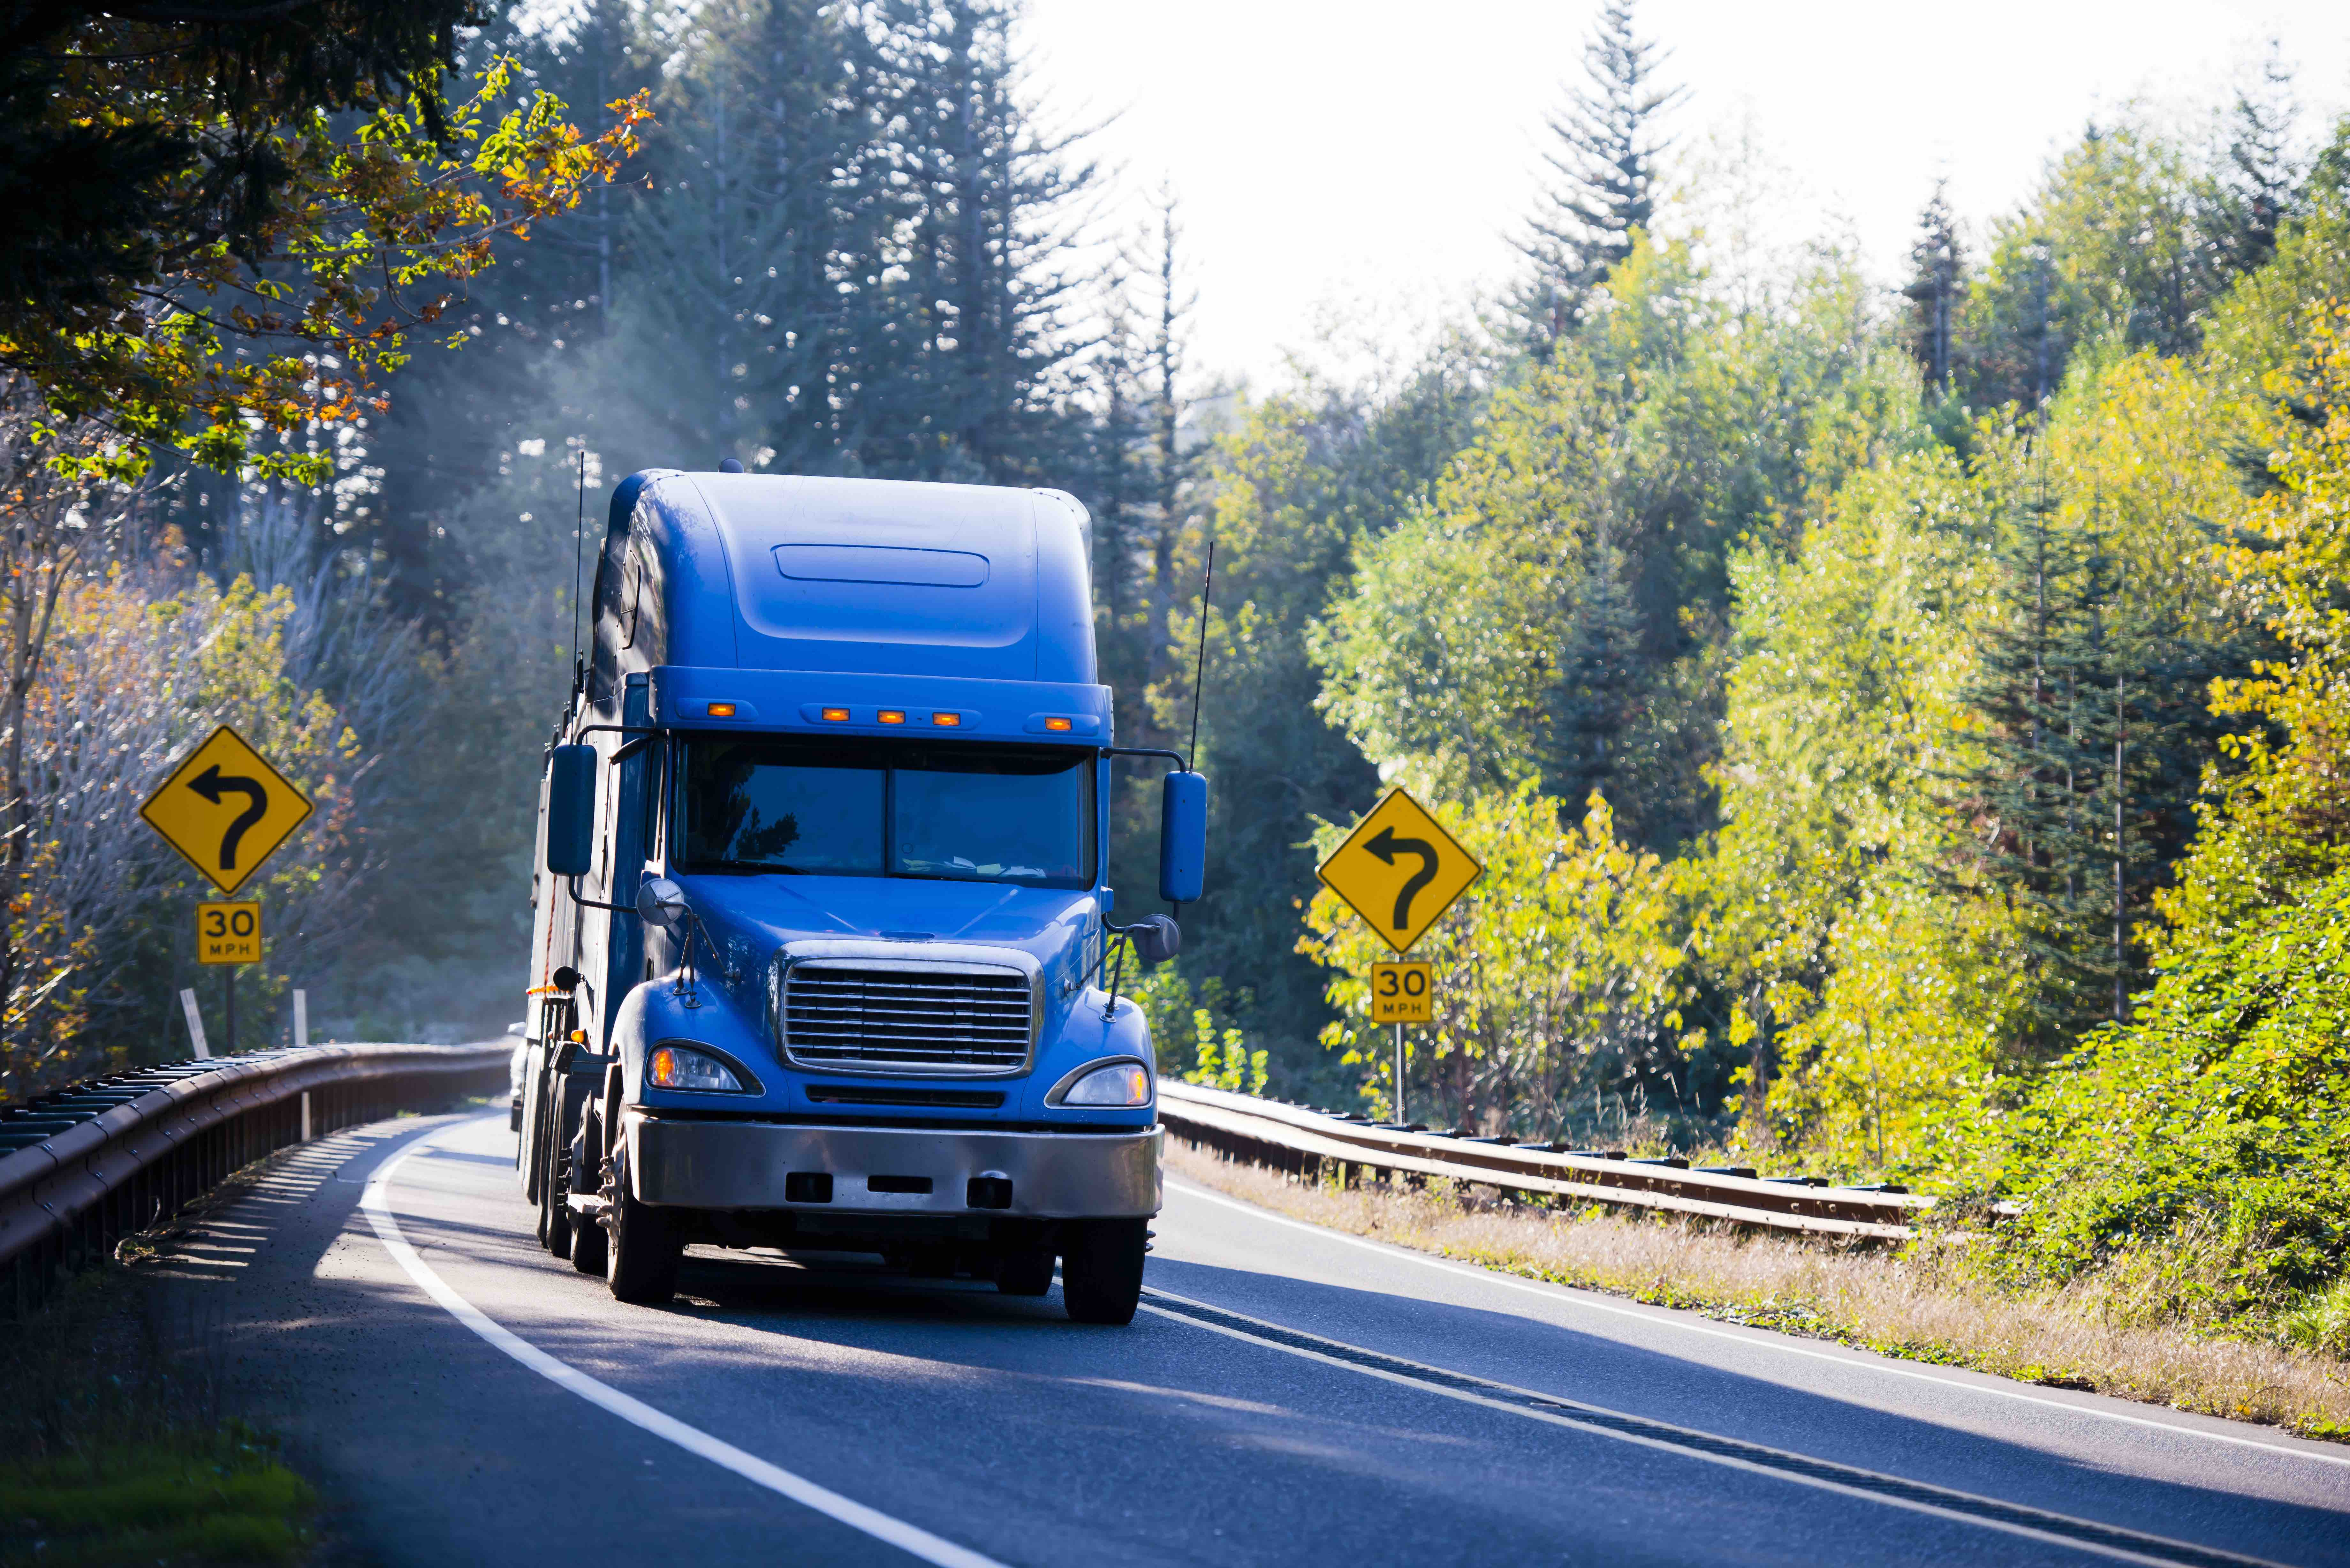 gps tracking becomes fleet operations